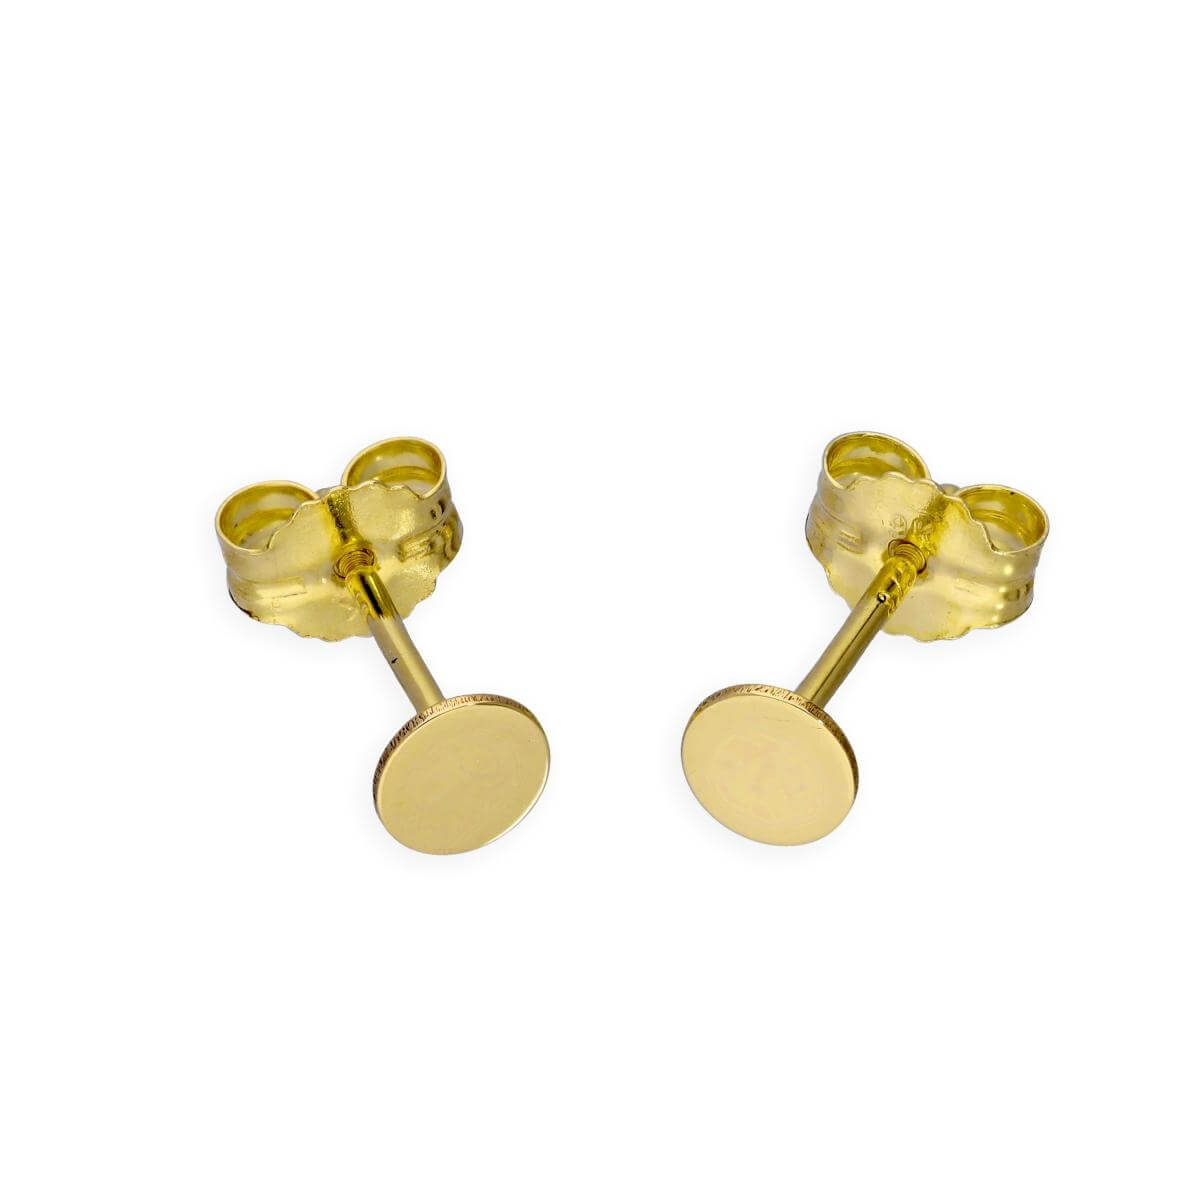 9ct Gold Flat Circle Stud Earrings